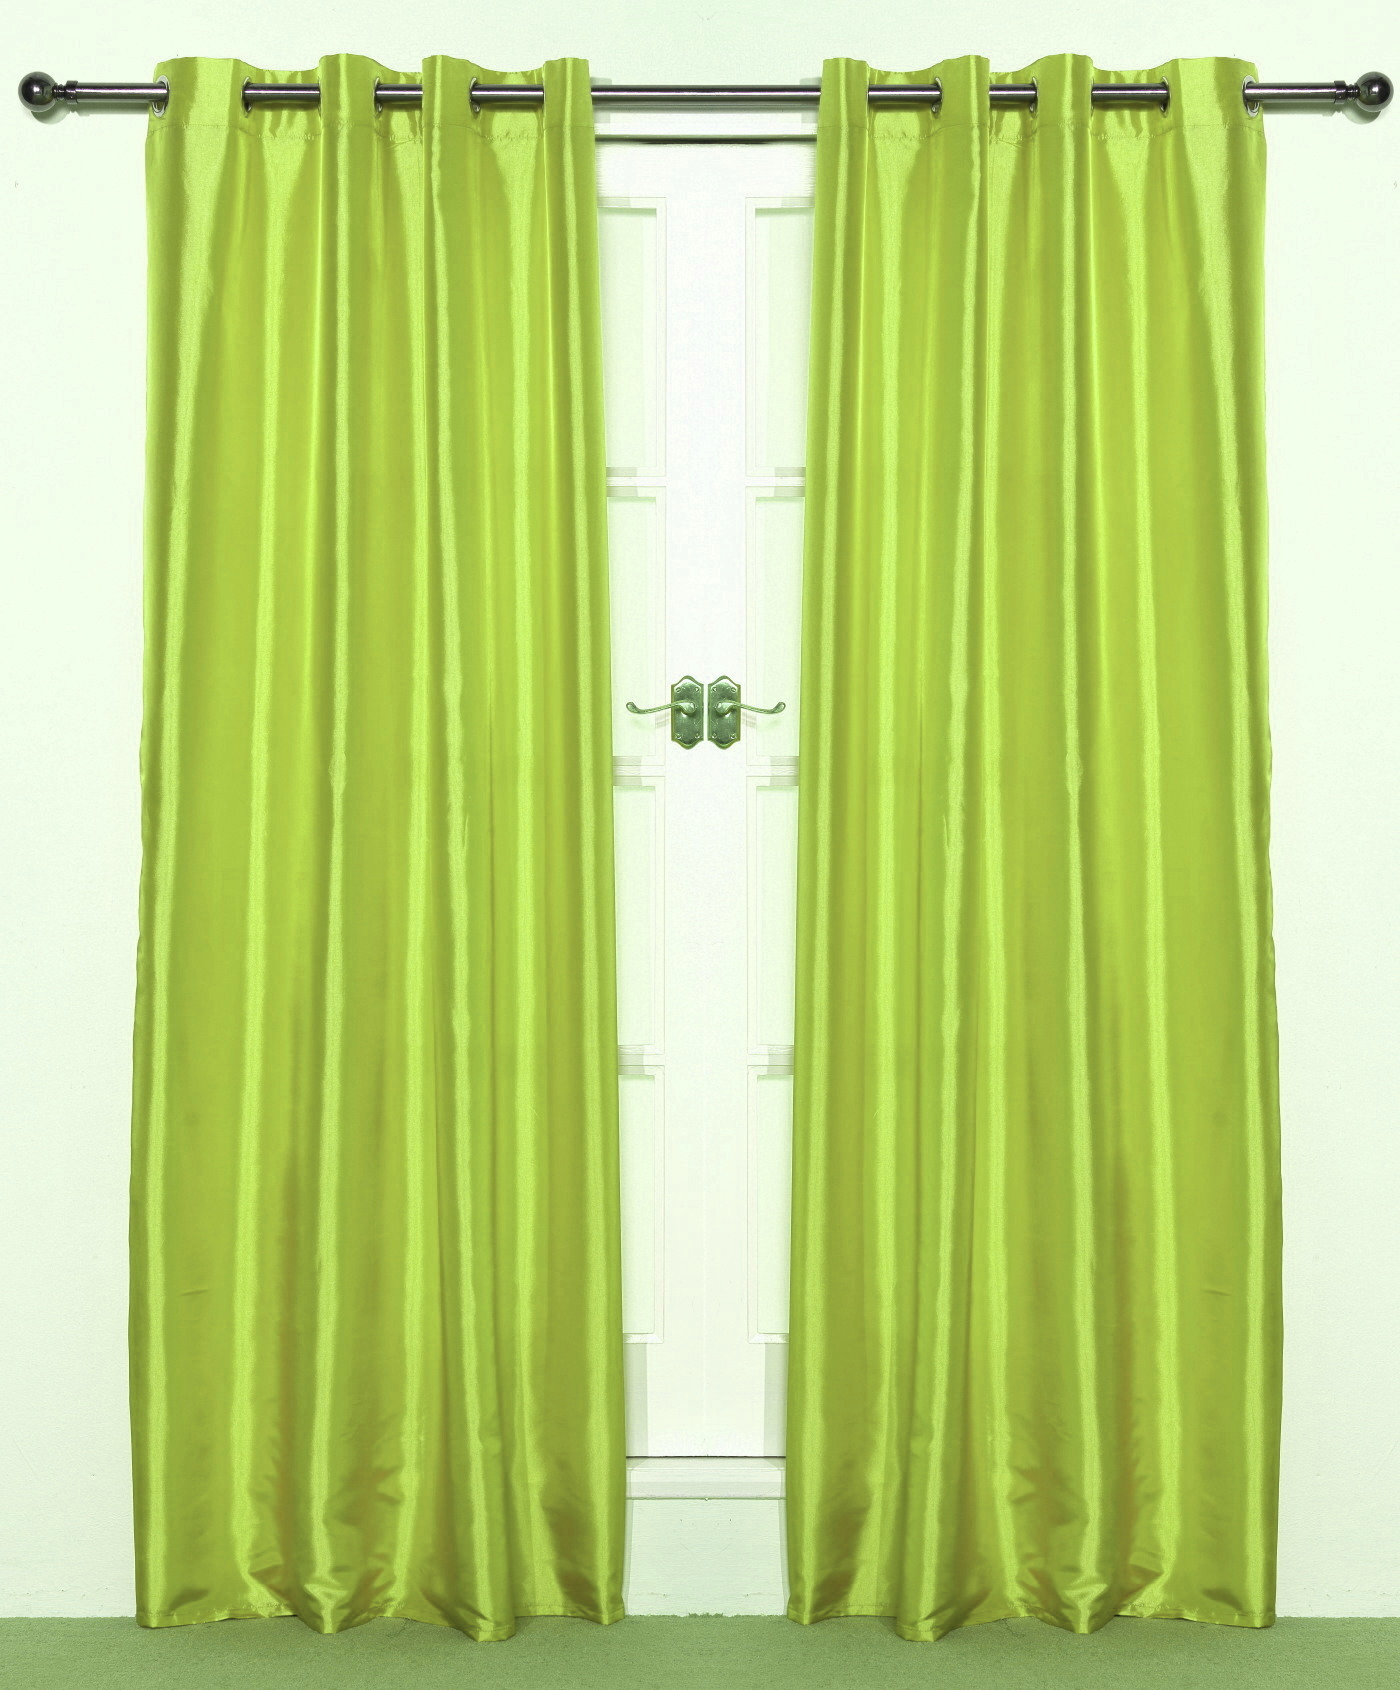 Pair Of Bright Lime Green Taffeta Eyelet Curtains 55 Wide X 72 Drop Ready Made Curtains